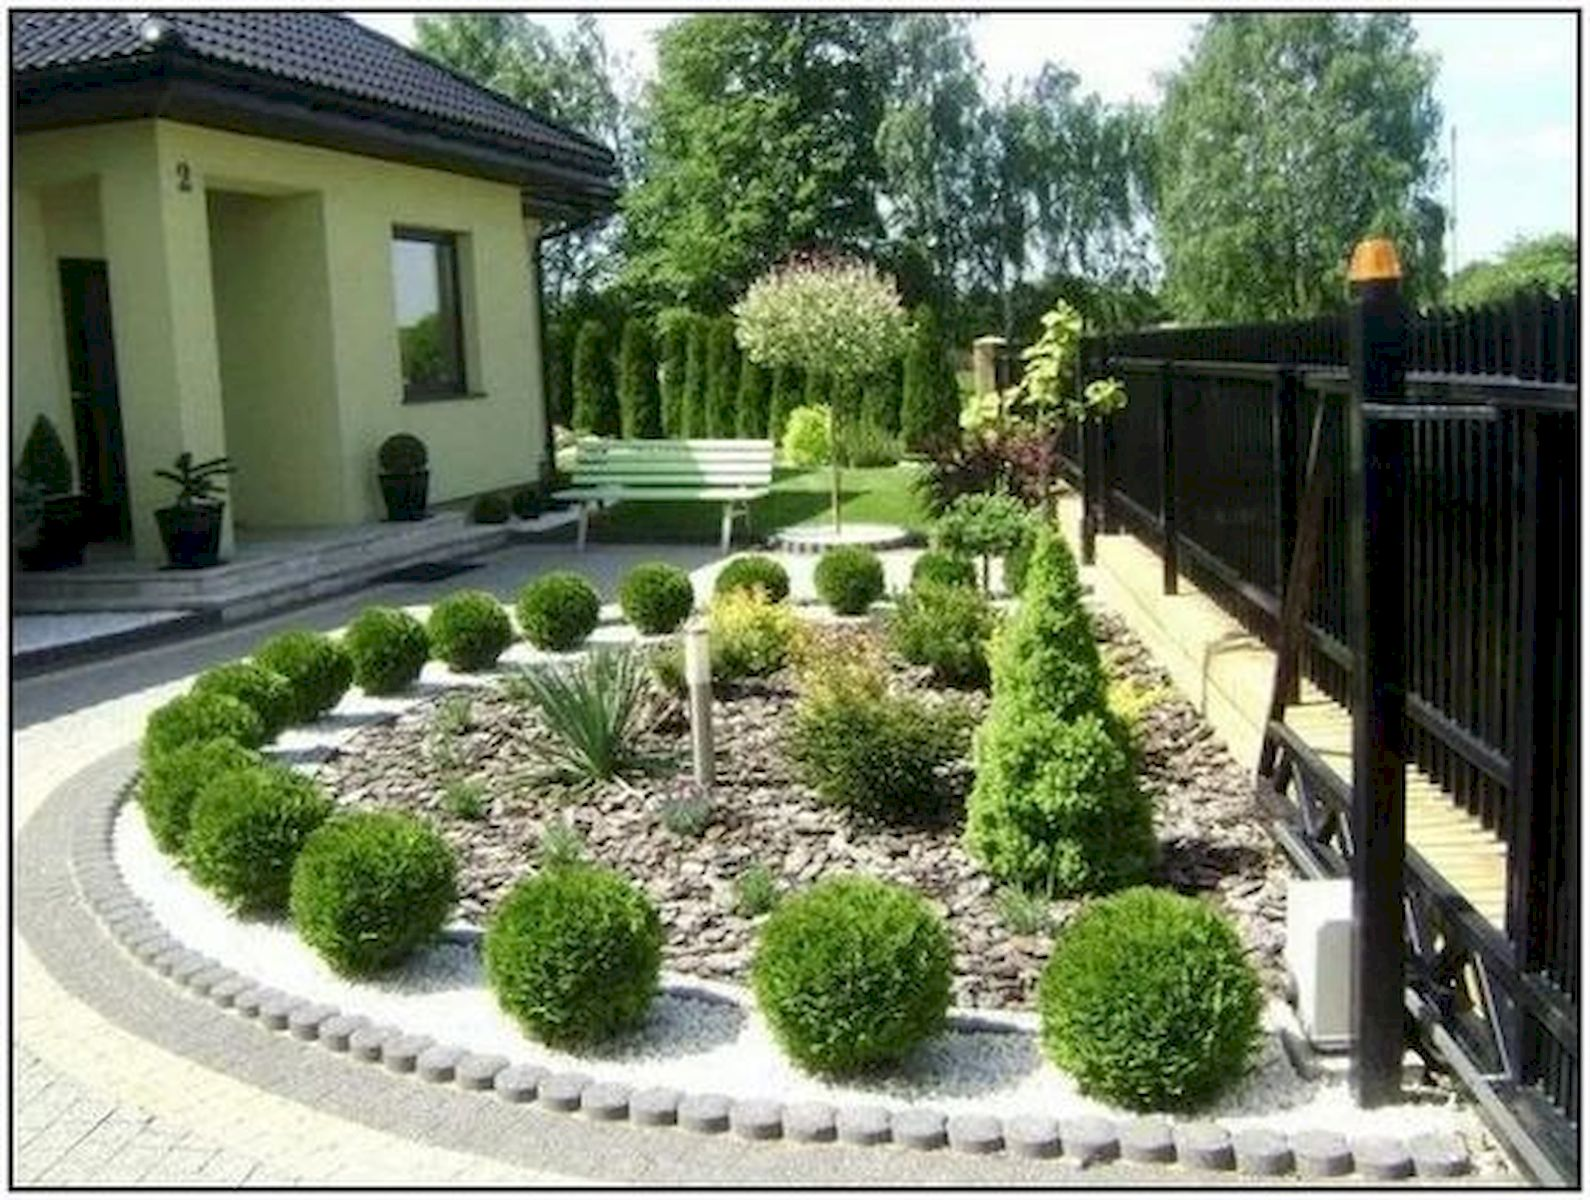 40 Fabulous Modern Garden Designs Ideas For Front Yard and Backyard (2)